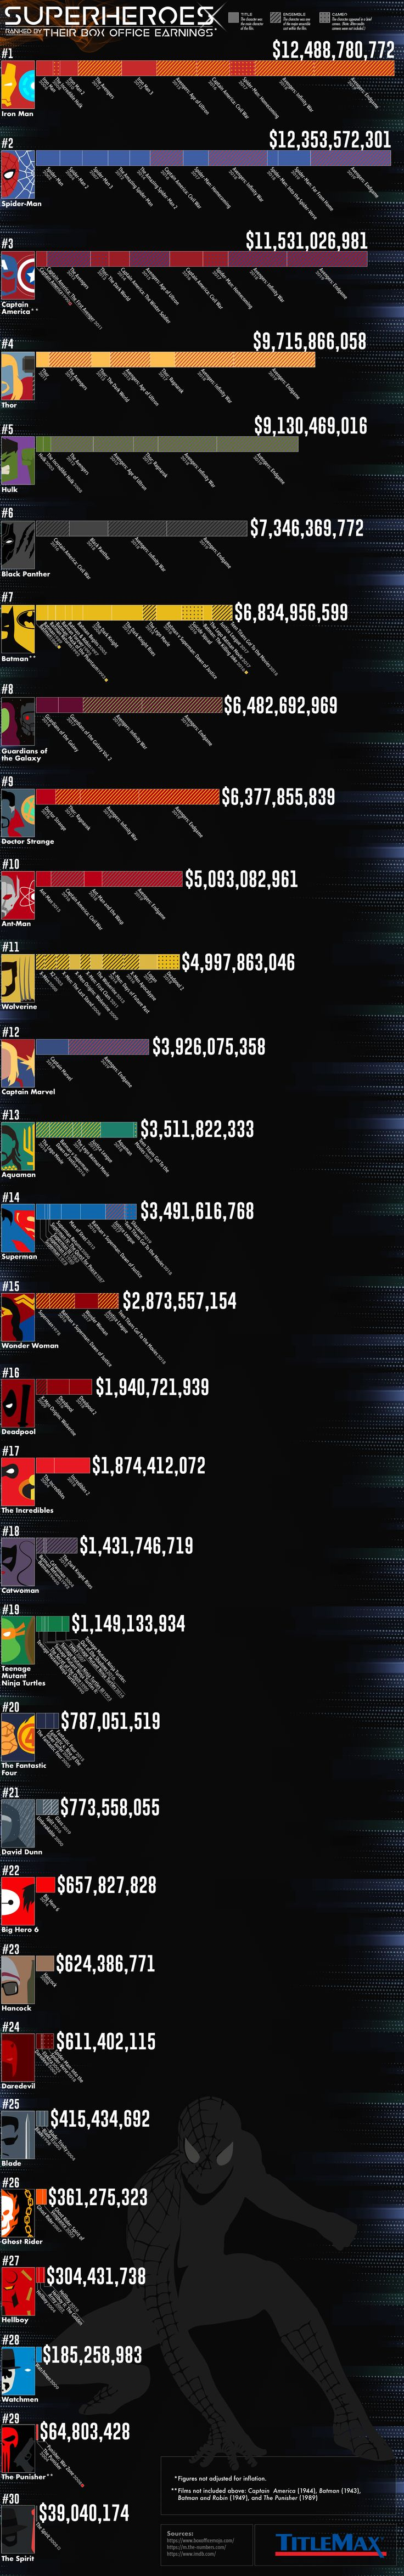 Which Superheroes Have Made the Most Money at the Box